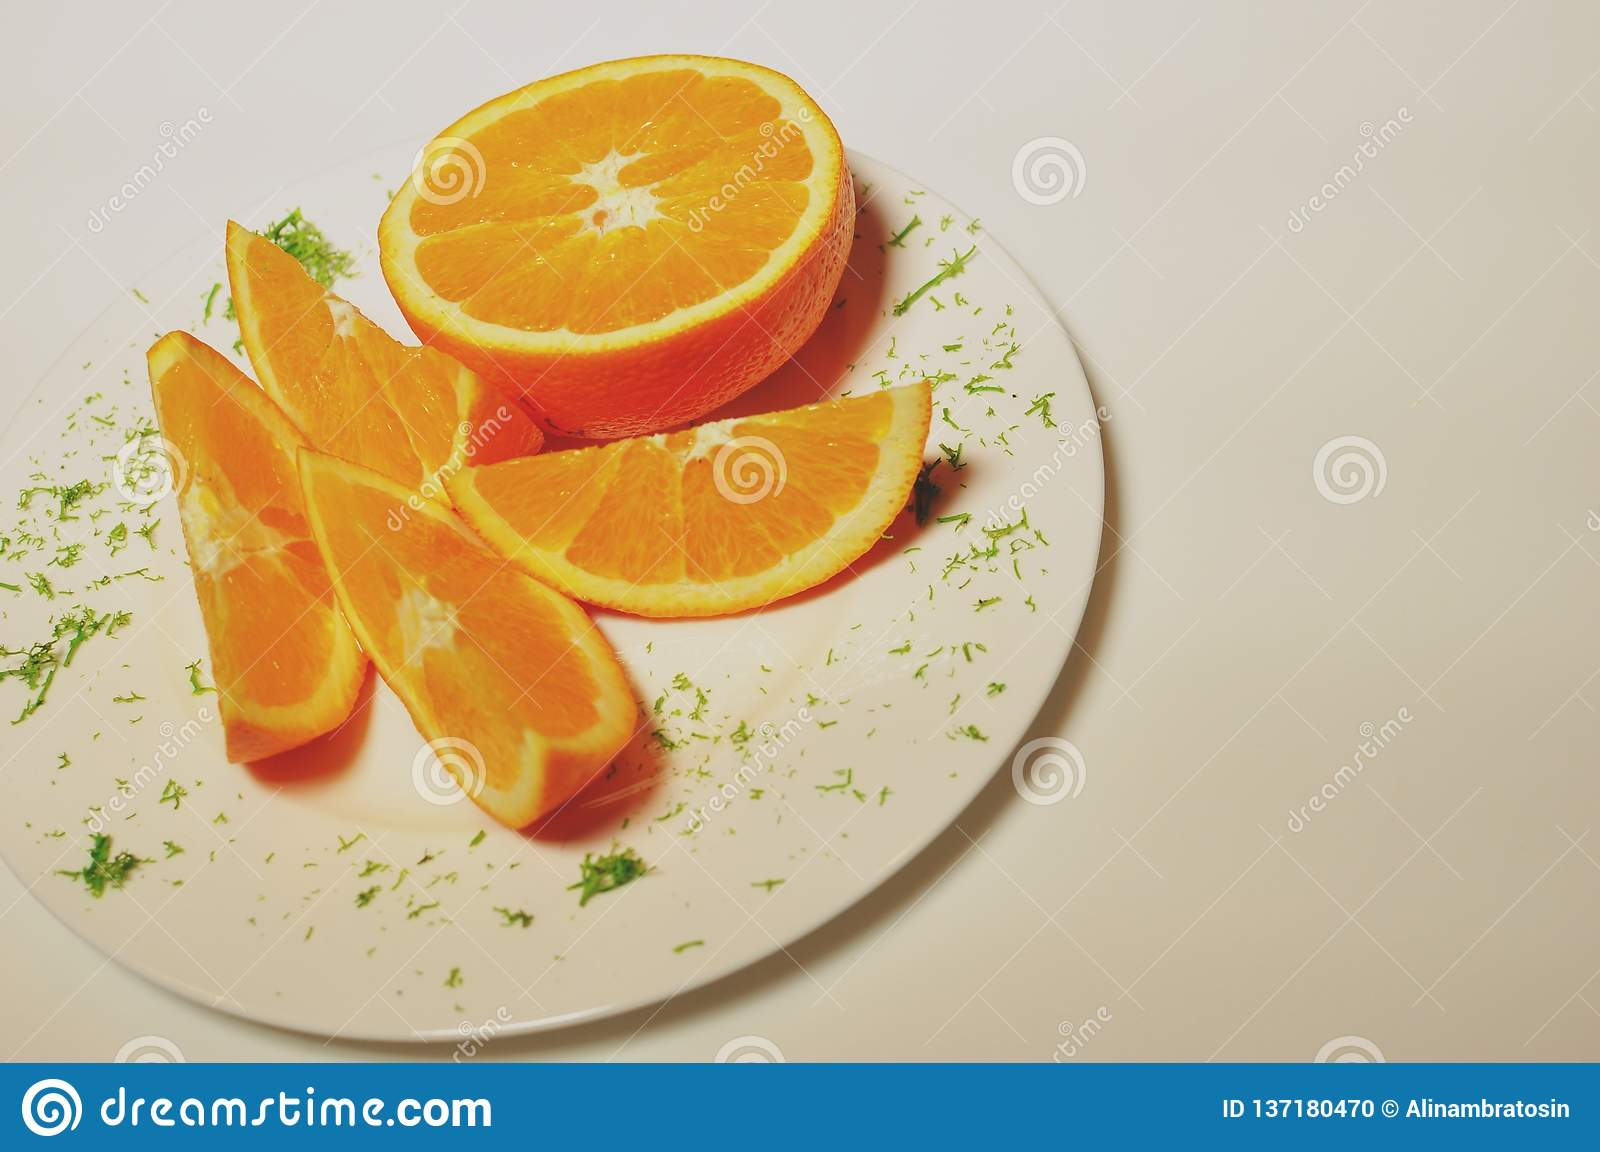 White plate with orange slices.